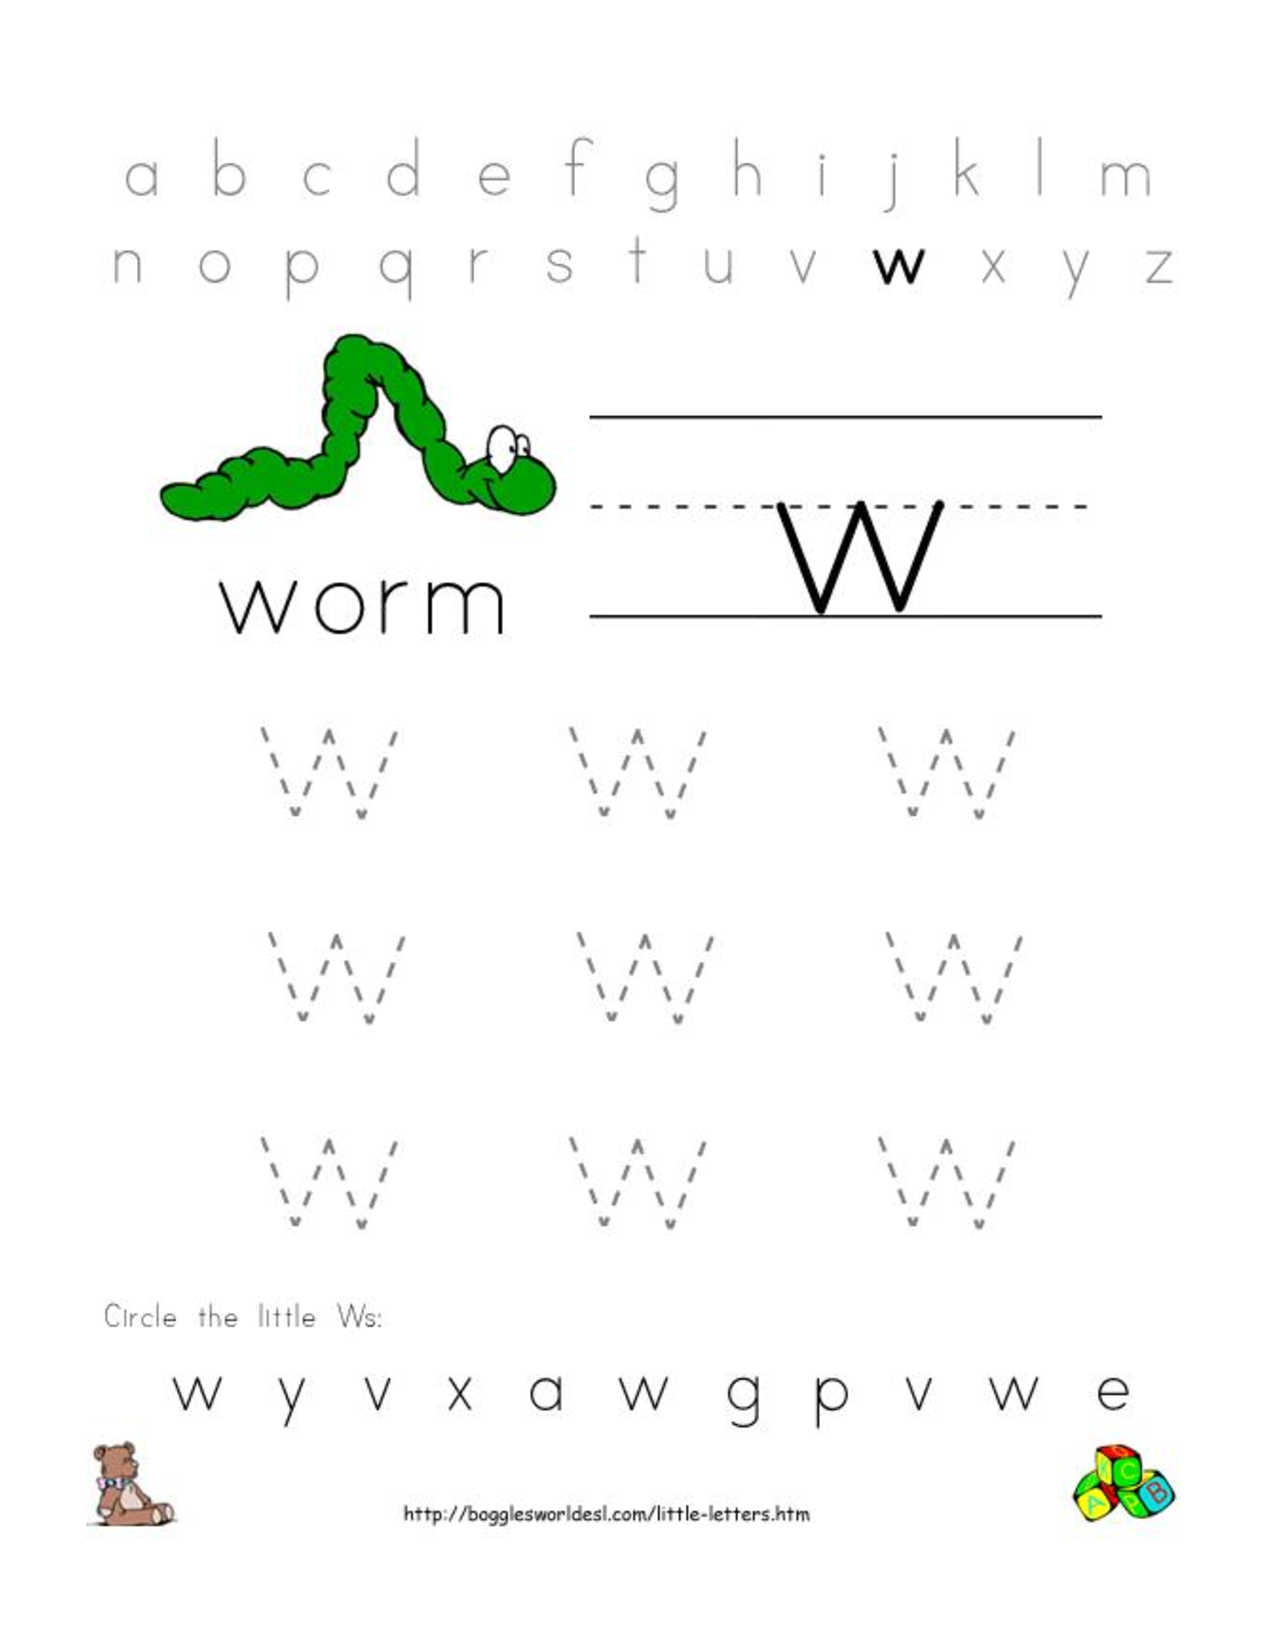 alphabet worksheets for preschoolers alphabet worksheet little letter w doc preschool la. Black Bedroom Furniture Sets. Home Design Ideas